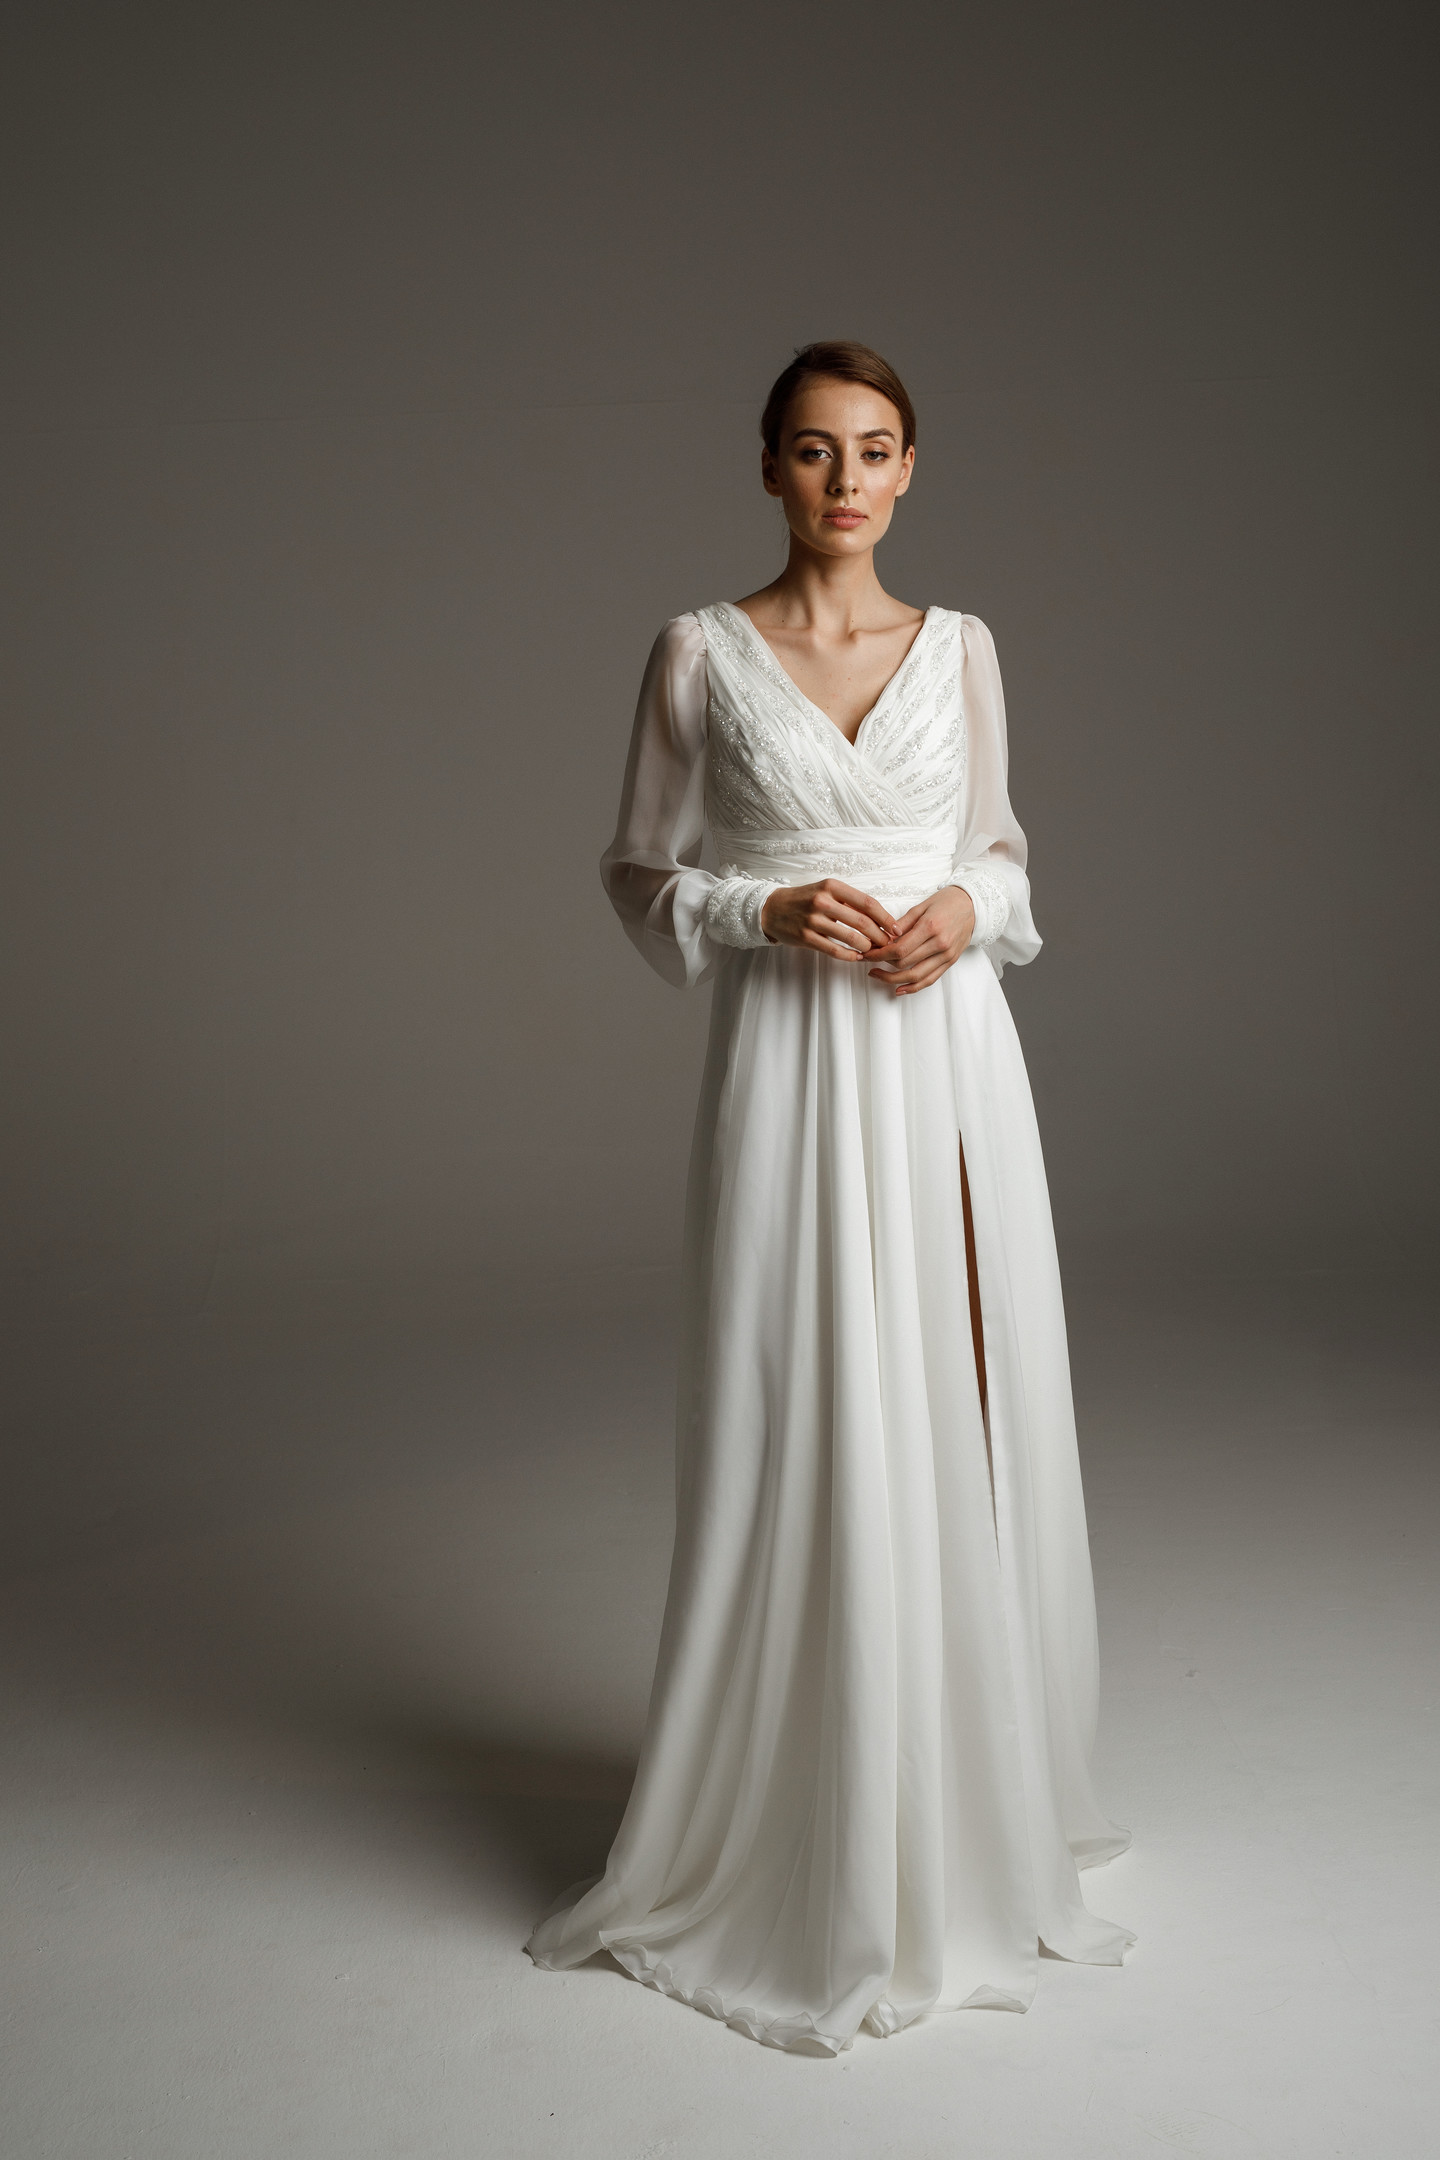 Fabian gown, 2020, couture, gown, dress, bridal, off-white, chiffon, embroidery, sleeves, A-line, popular